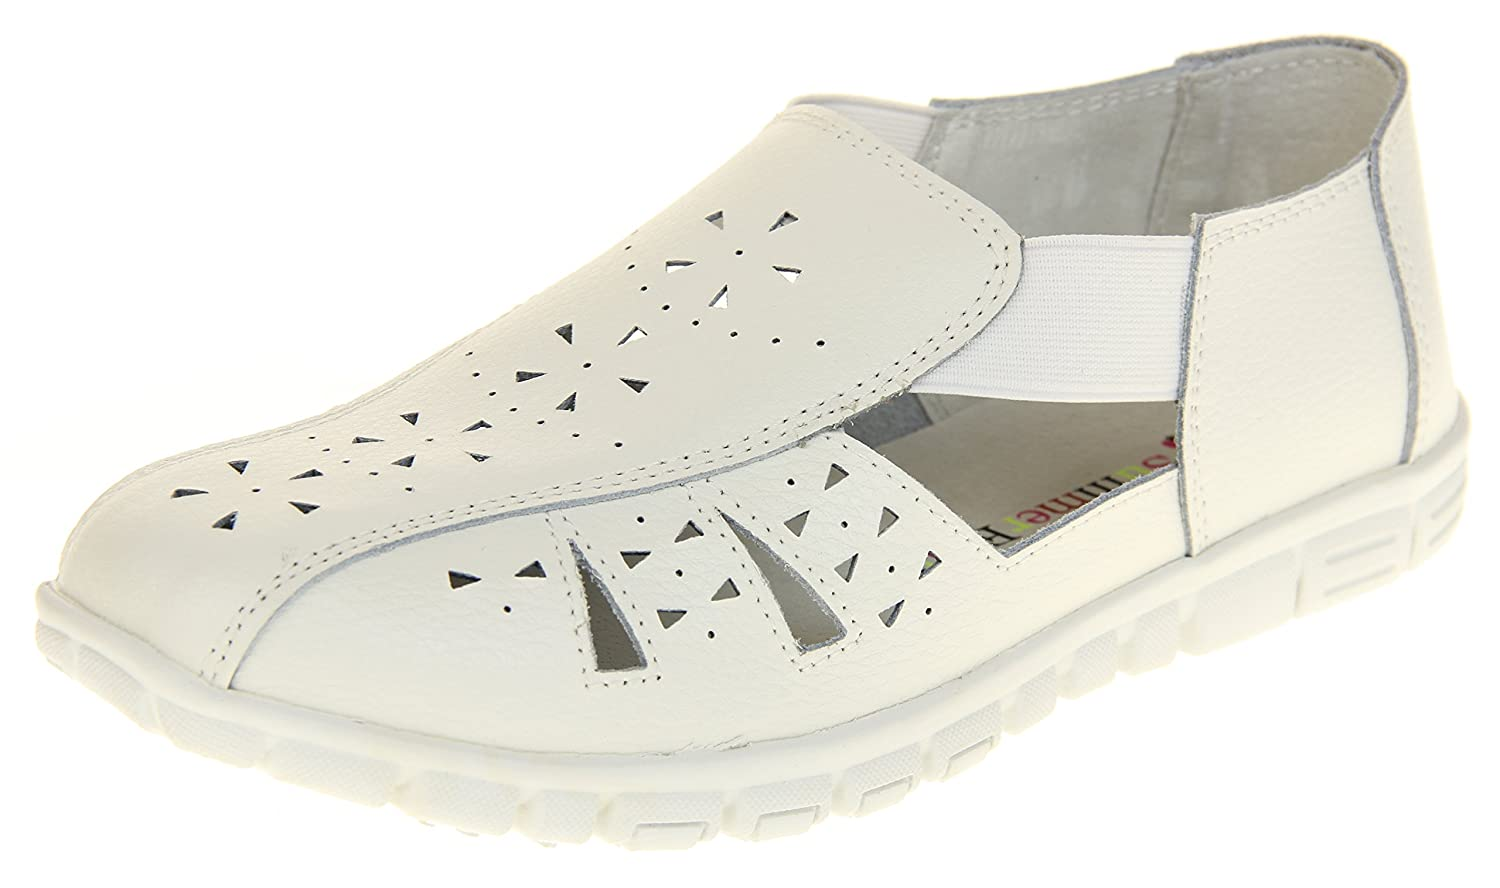 Coolers Womens Leather Wide Fit EEE Sandals Shoes B07D6RR5LZ 6 B(M) US|White